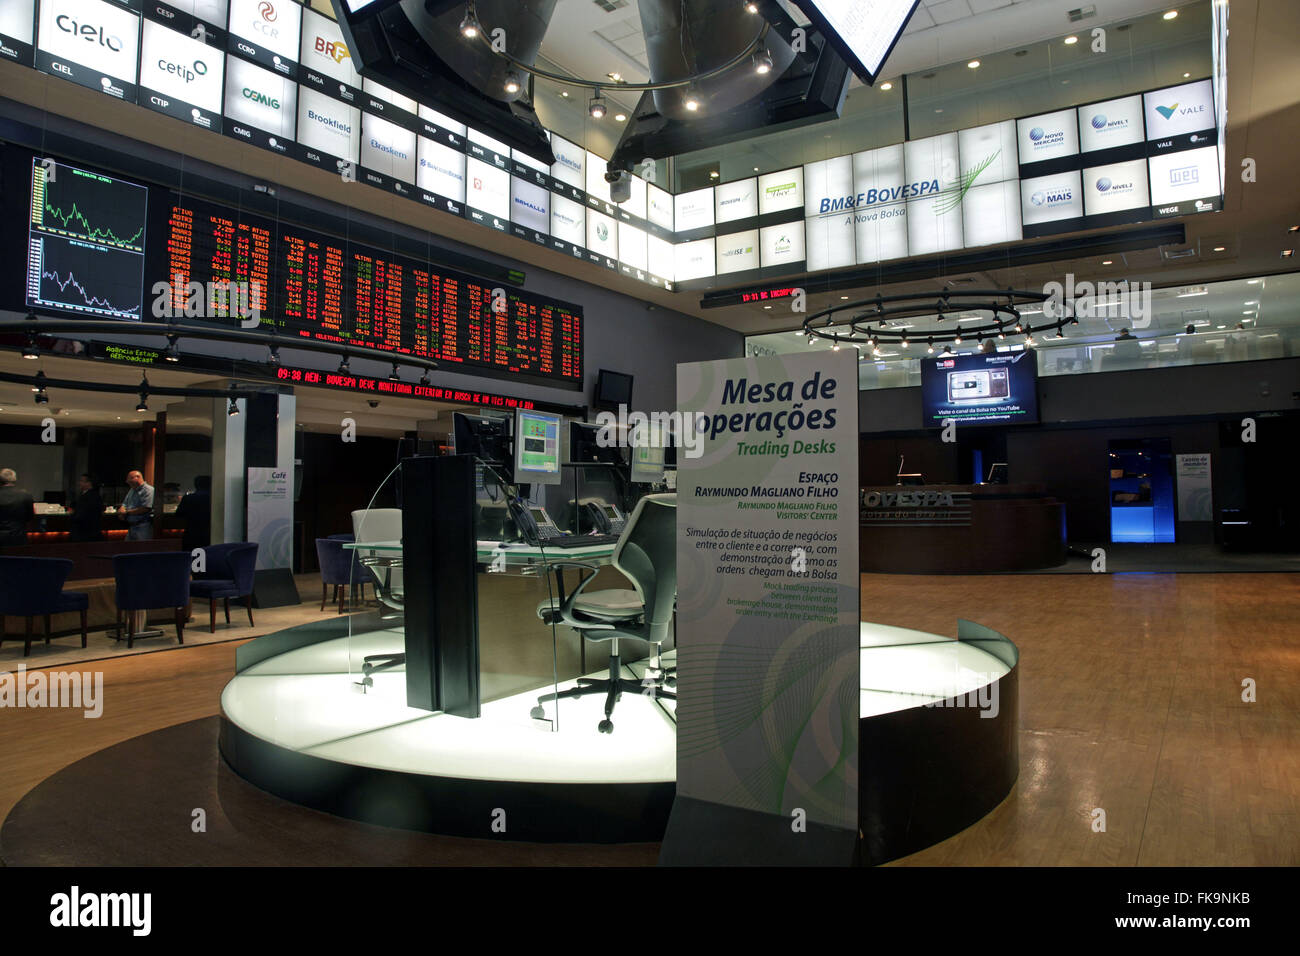 Bureau of operations for Business Simulation - BOVESPA - the Stock Exchange of Sao Paulo - Stock Image